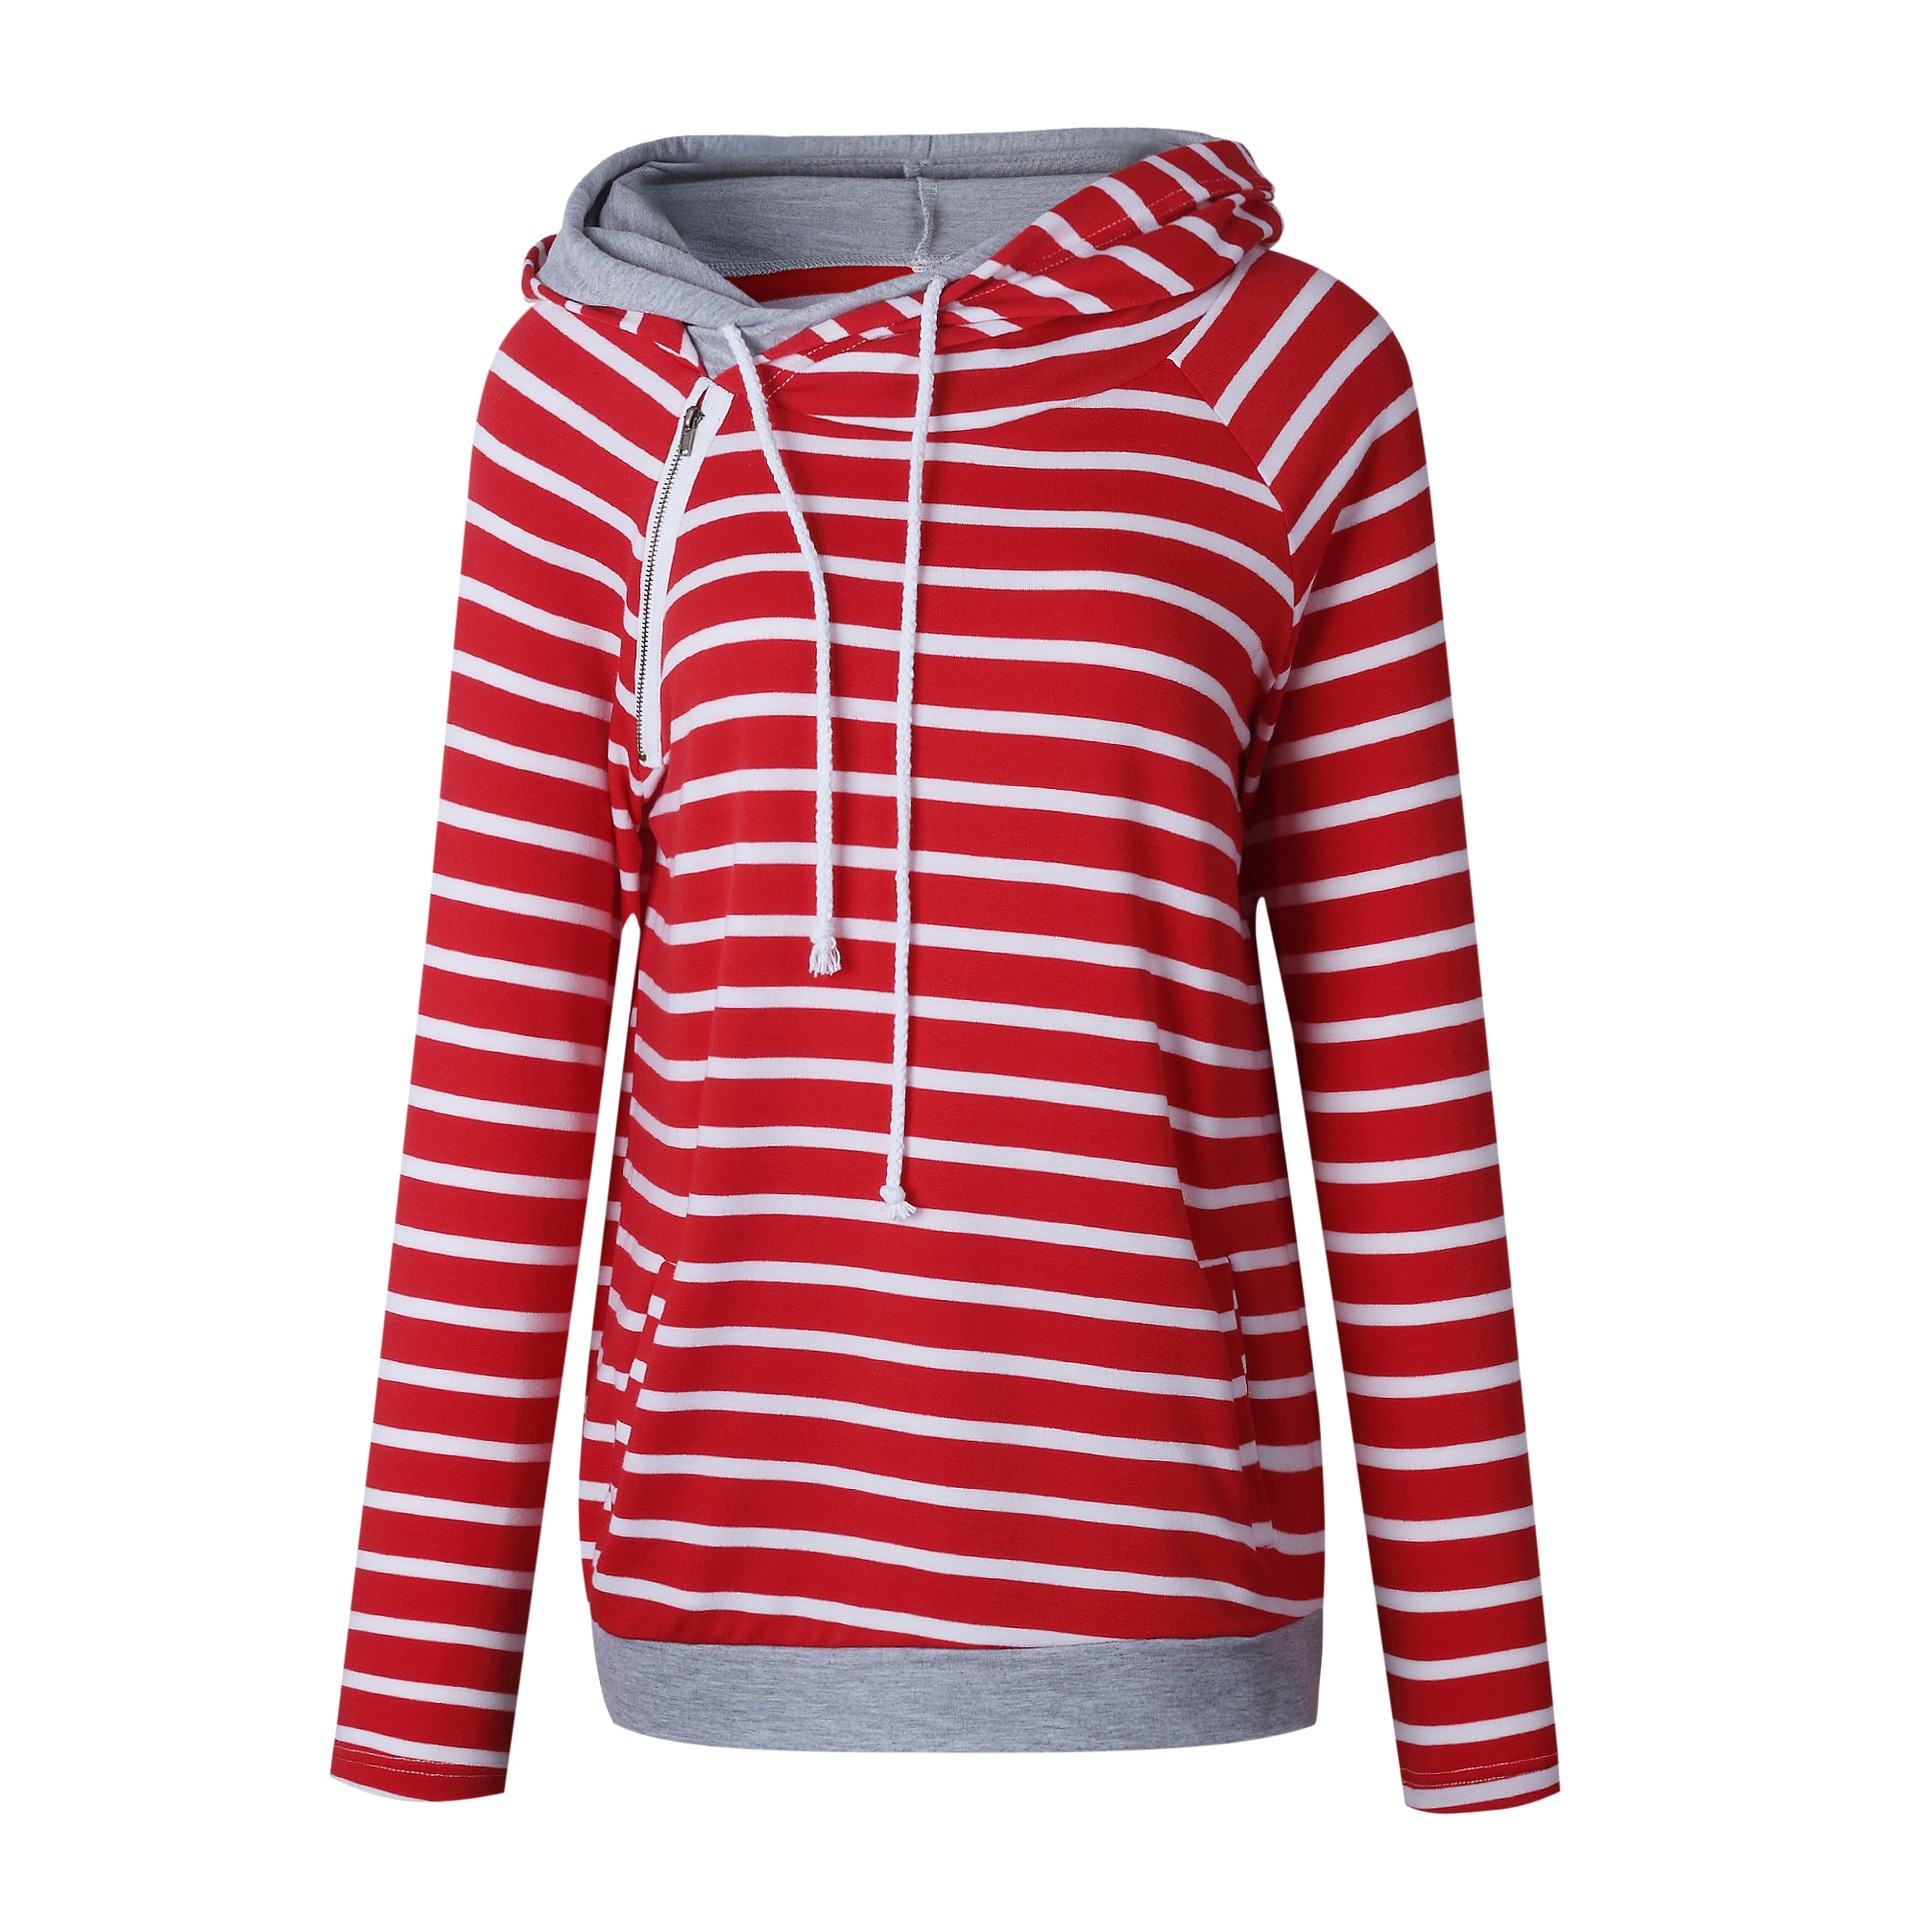 Women's Patchwork Striped Pullover Long Sleeve Hoodie, Tops With Pockets, Hooded Sweatshirt 39